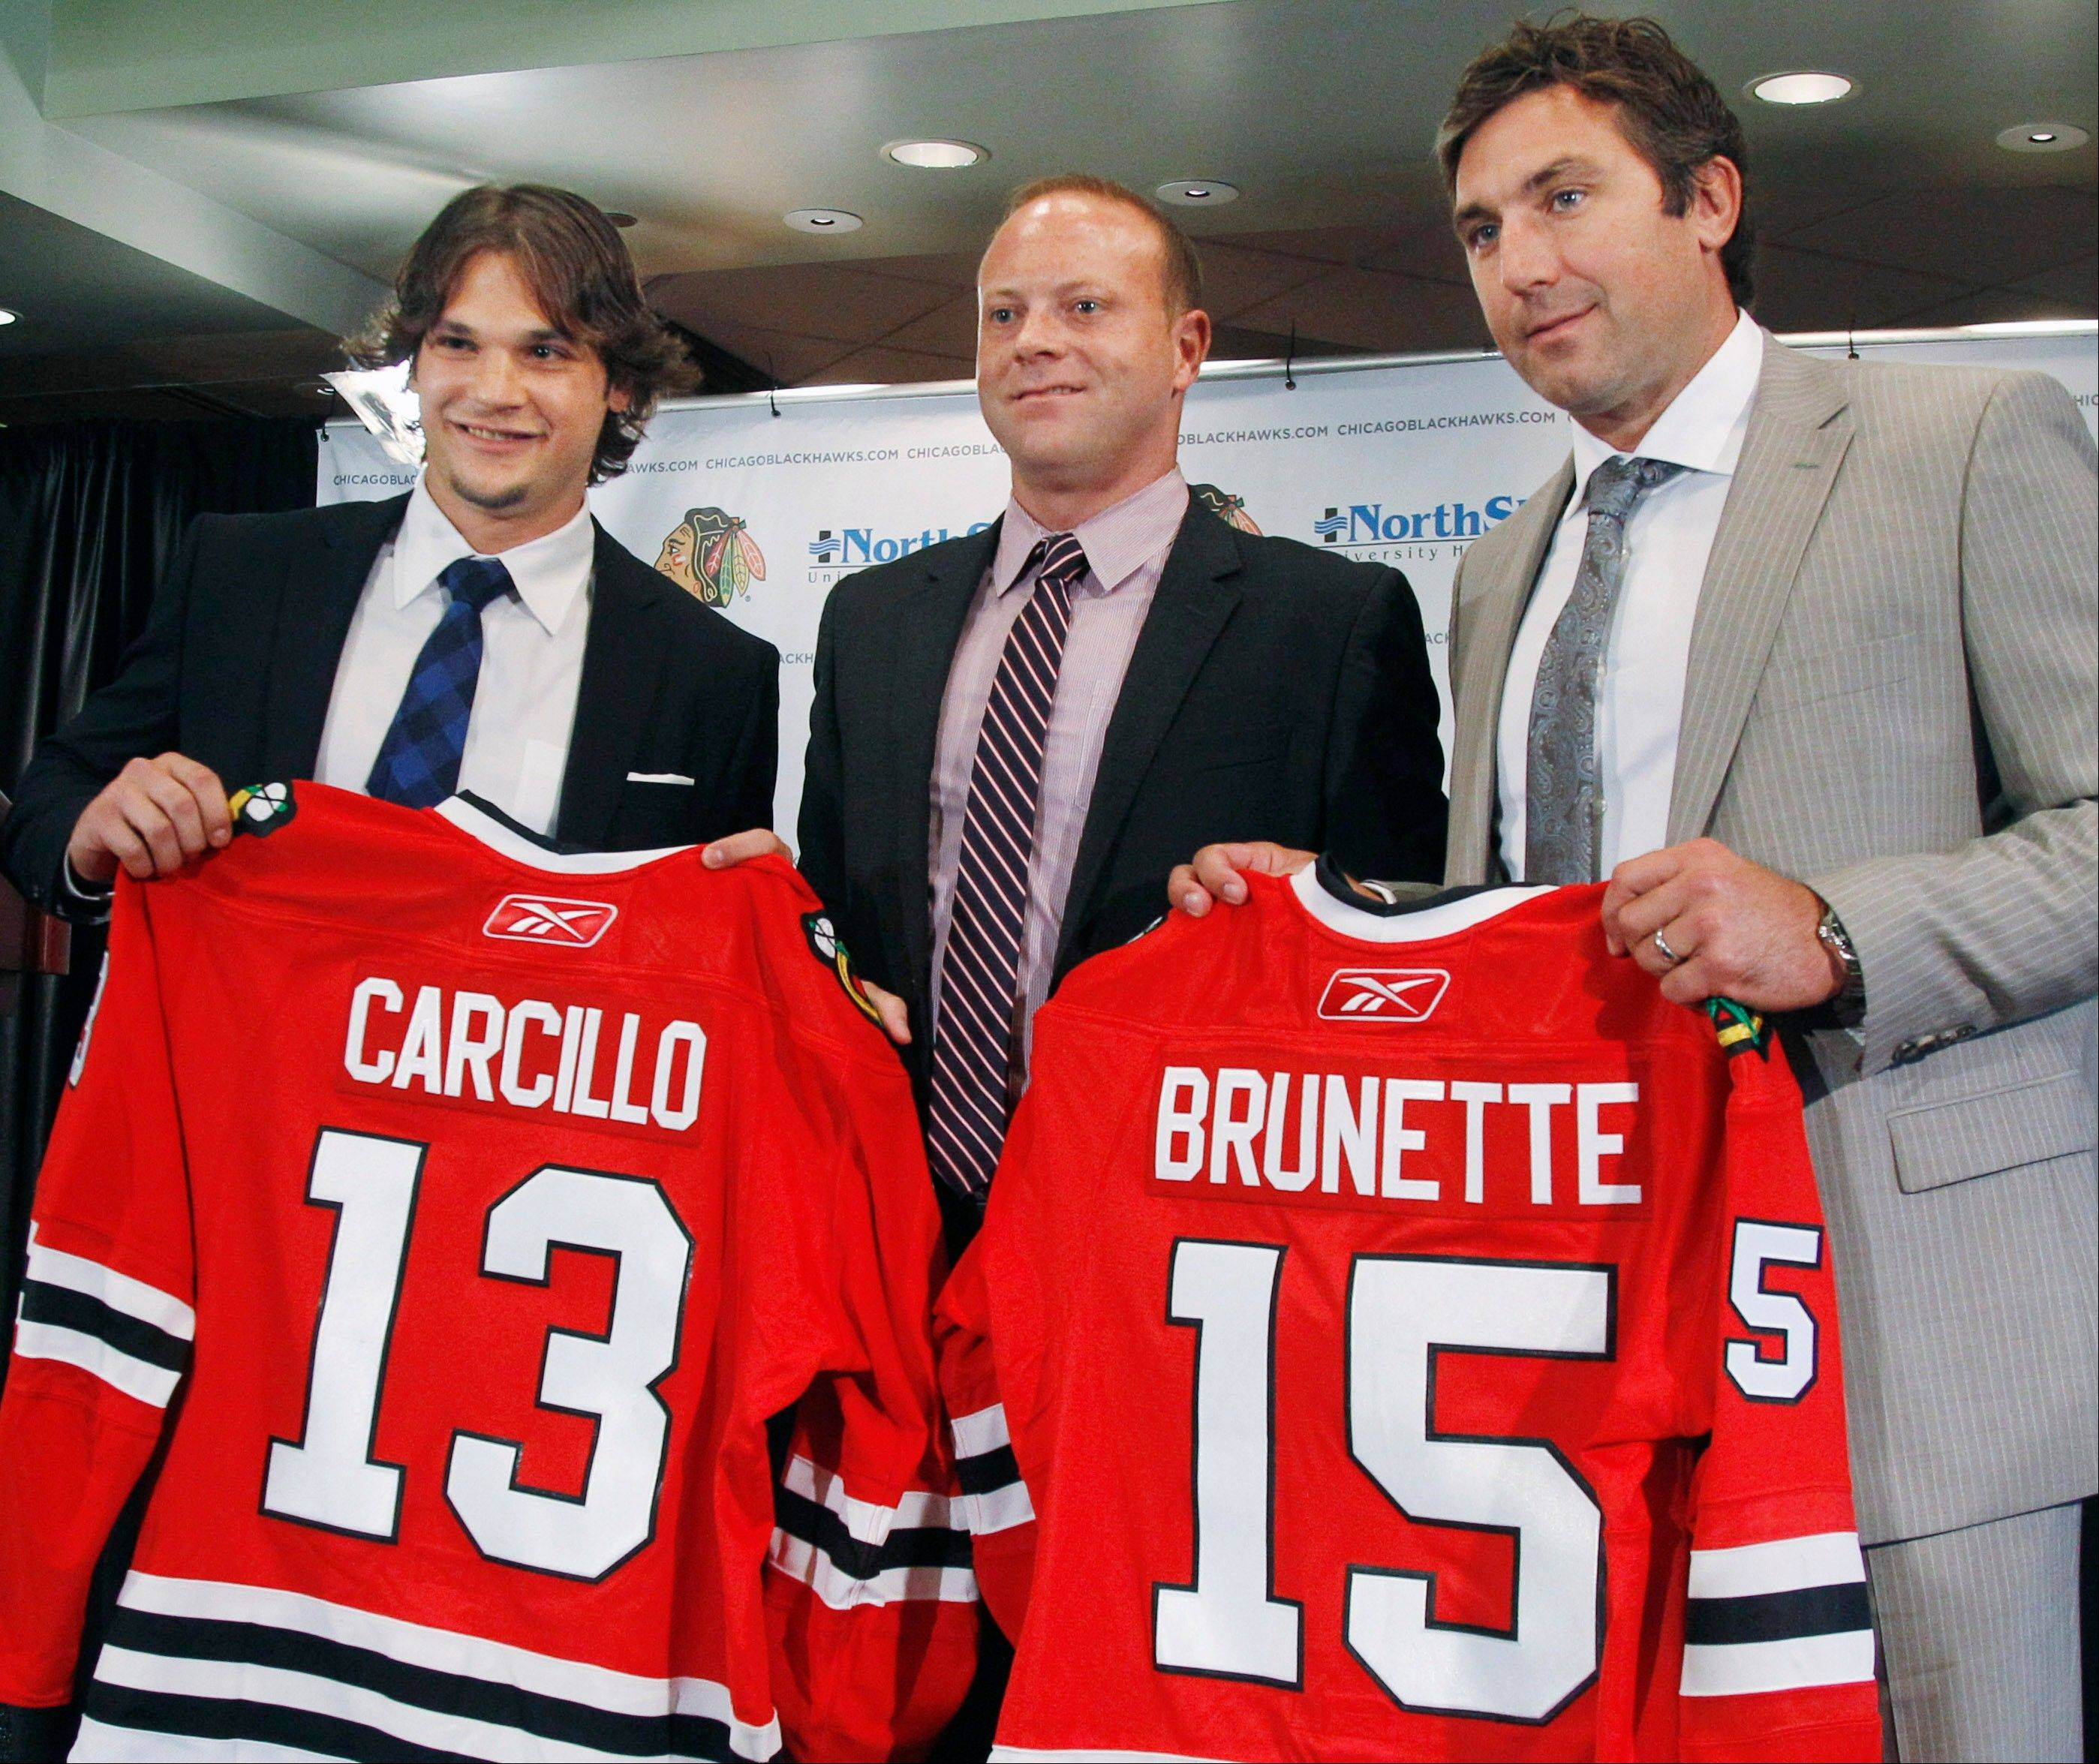 New Chicago Blackhawks free agent signees Daniel Carcillo and Andrew Brunette pose with general manager Stan Bowman after being introduced at a news conference Monday.